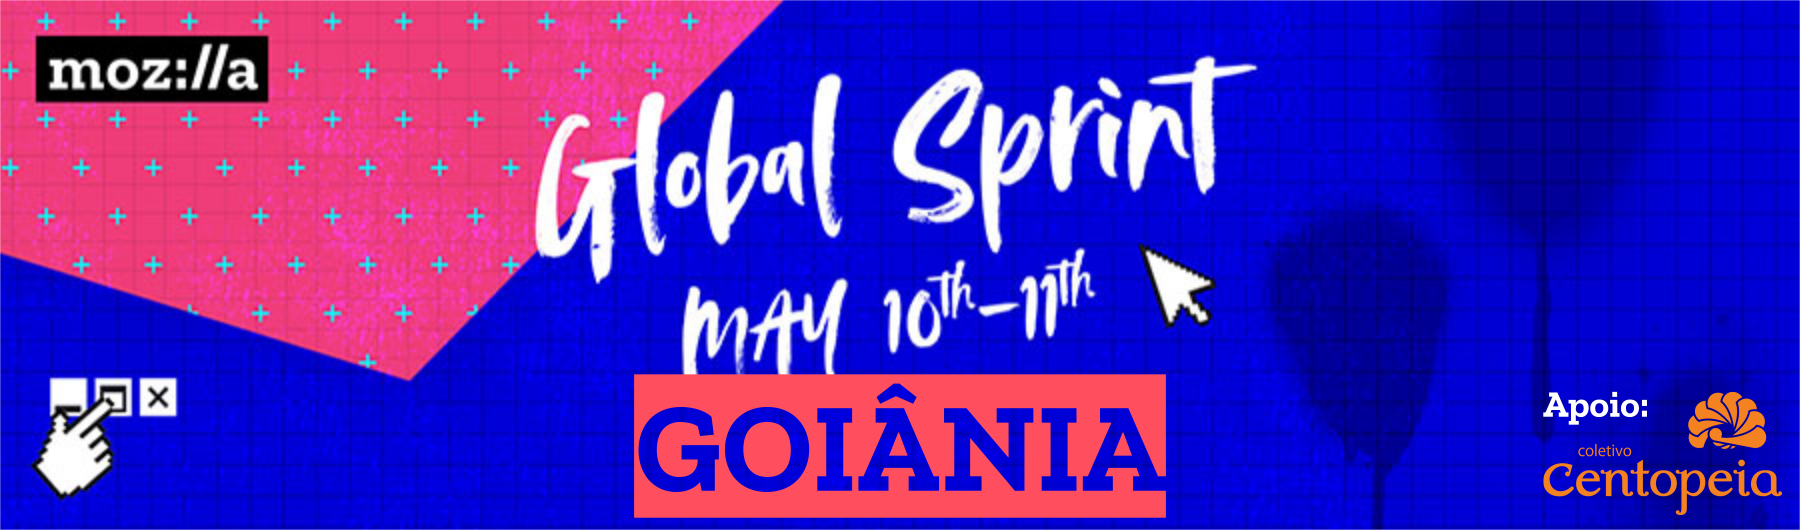 Global Sprint 2018 Goiânia